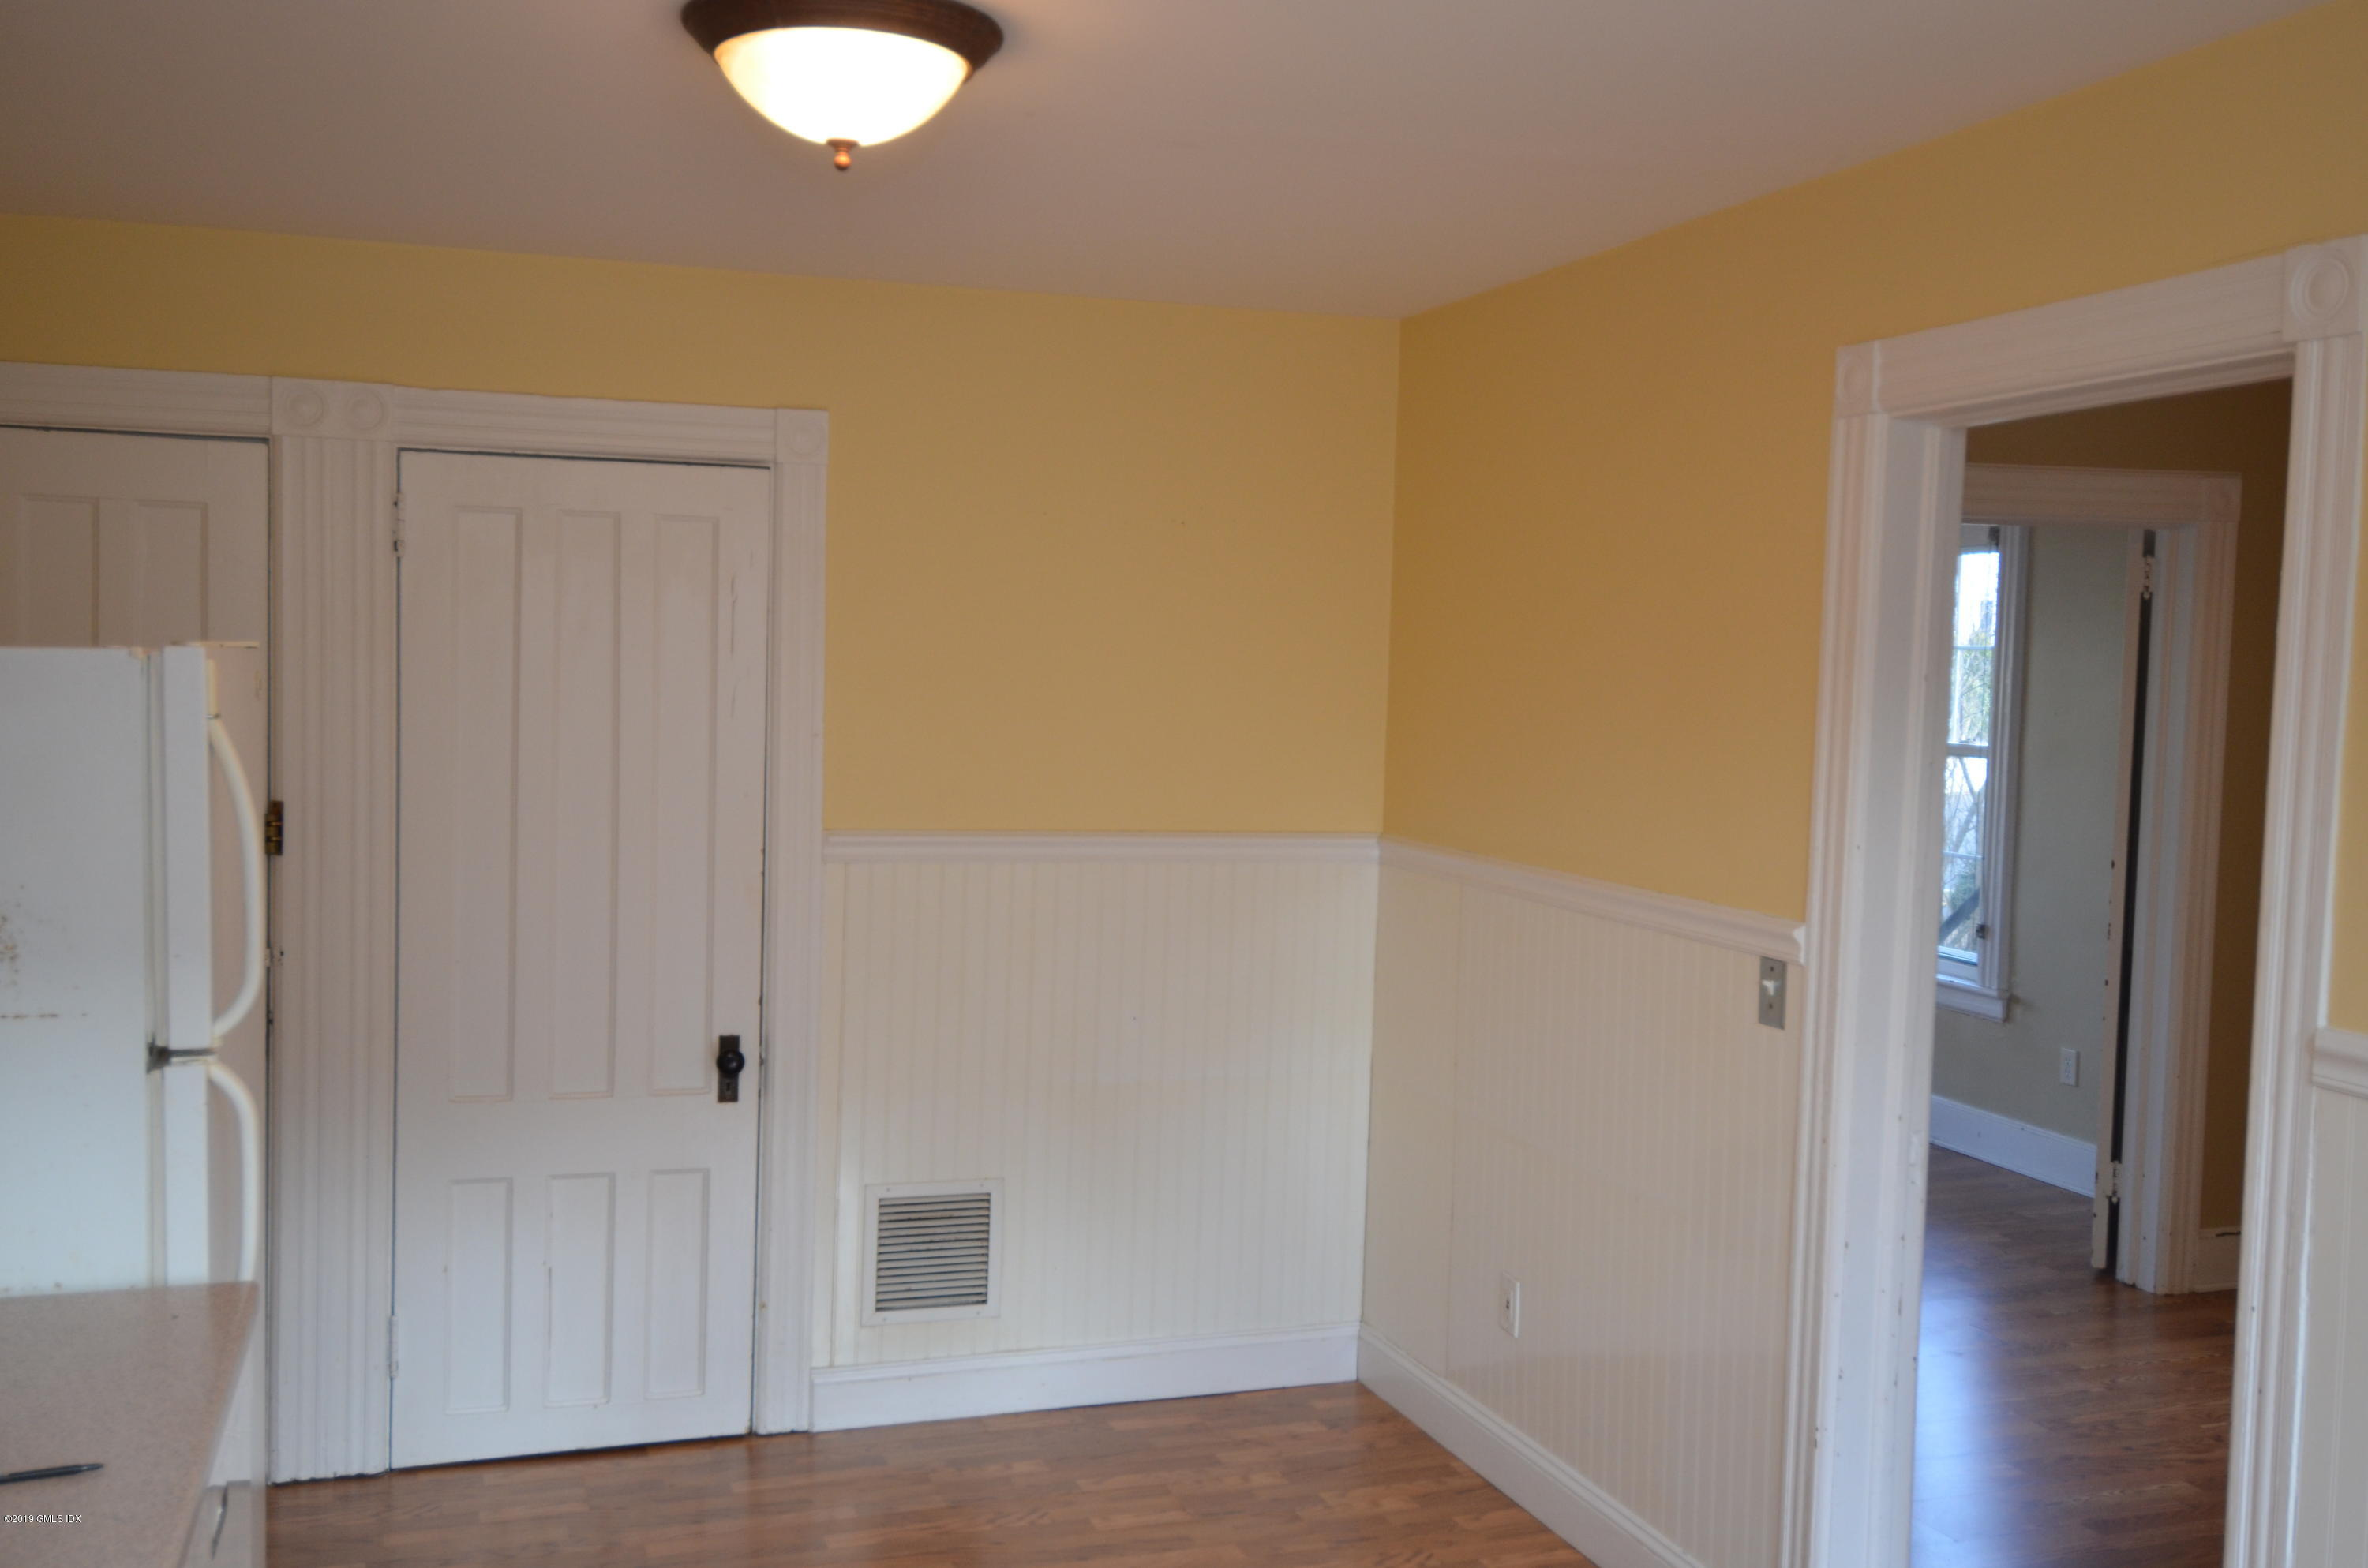 70 Sherwood Place,Greenwich,Connecticut 06830,1 Bedroom Bedrooms,1 BathroomBathrooms,Apartment,Sherwood,105207